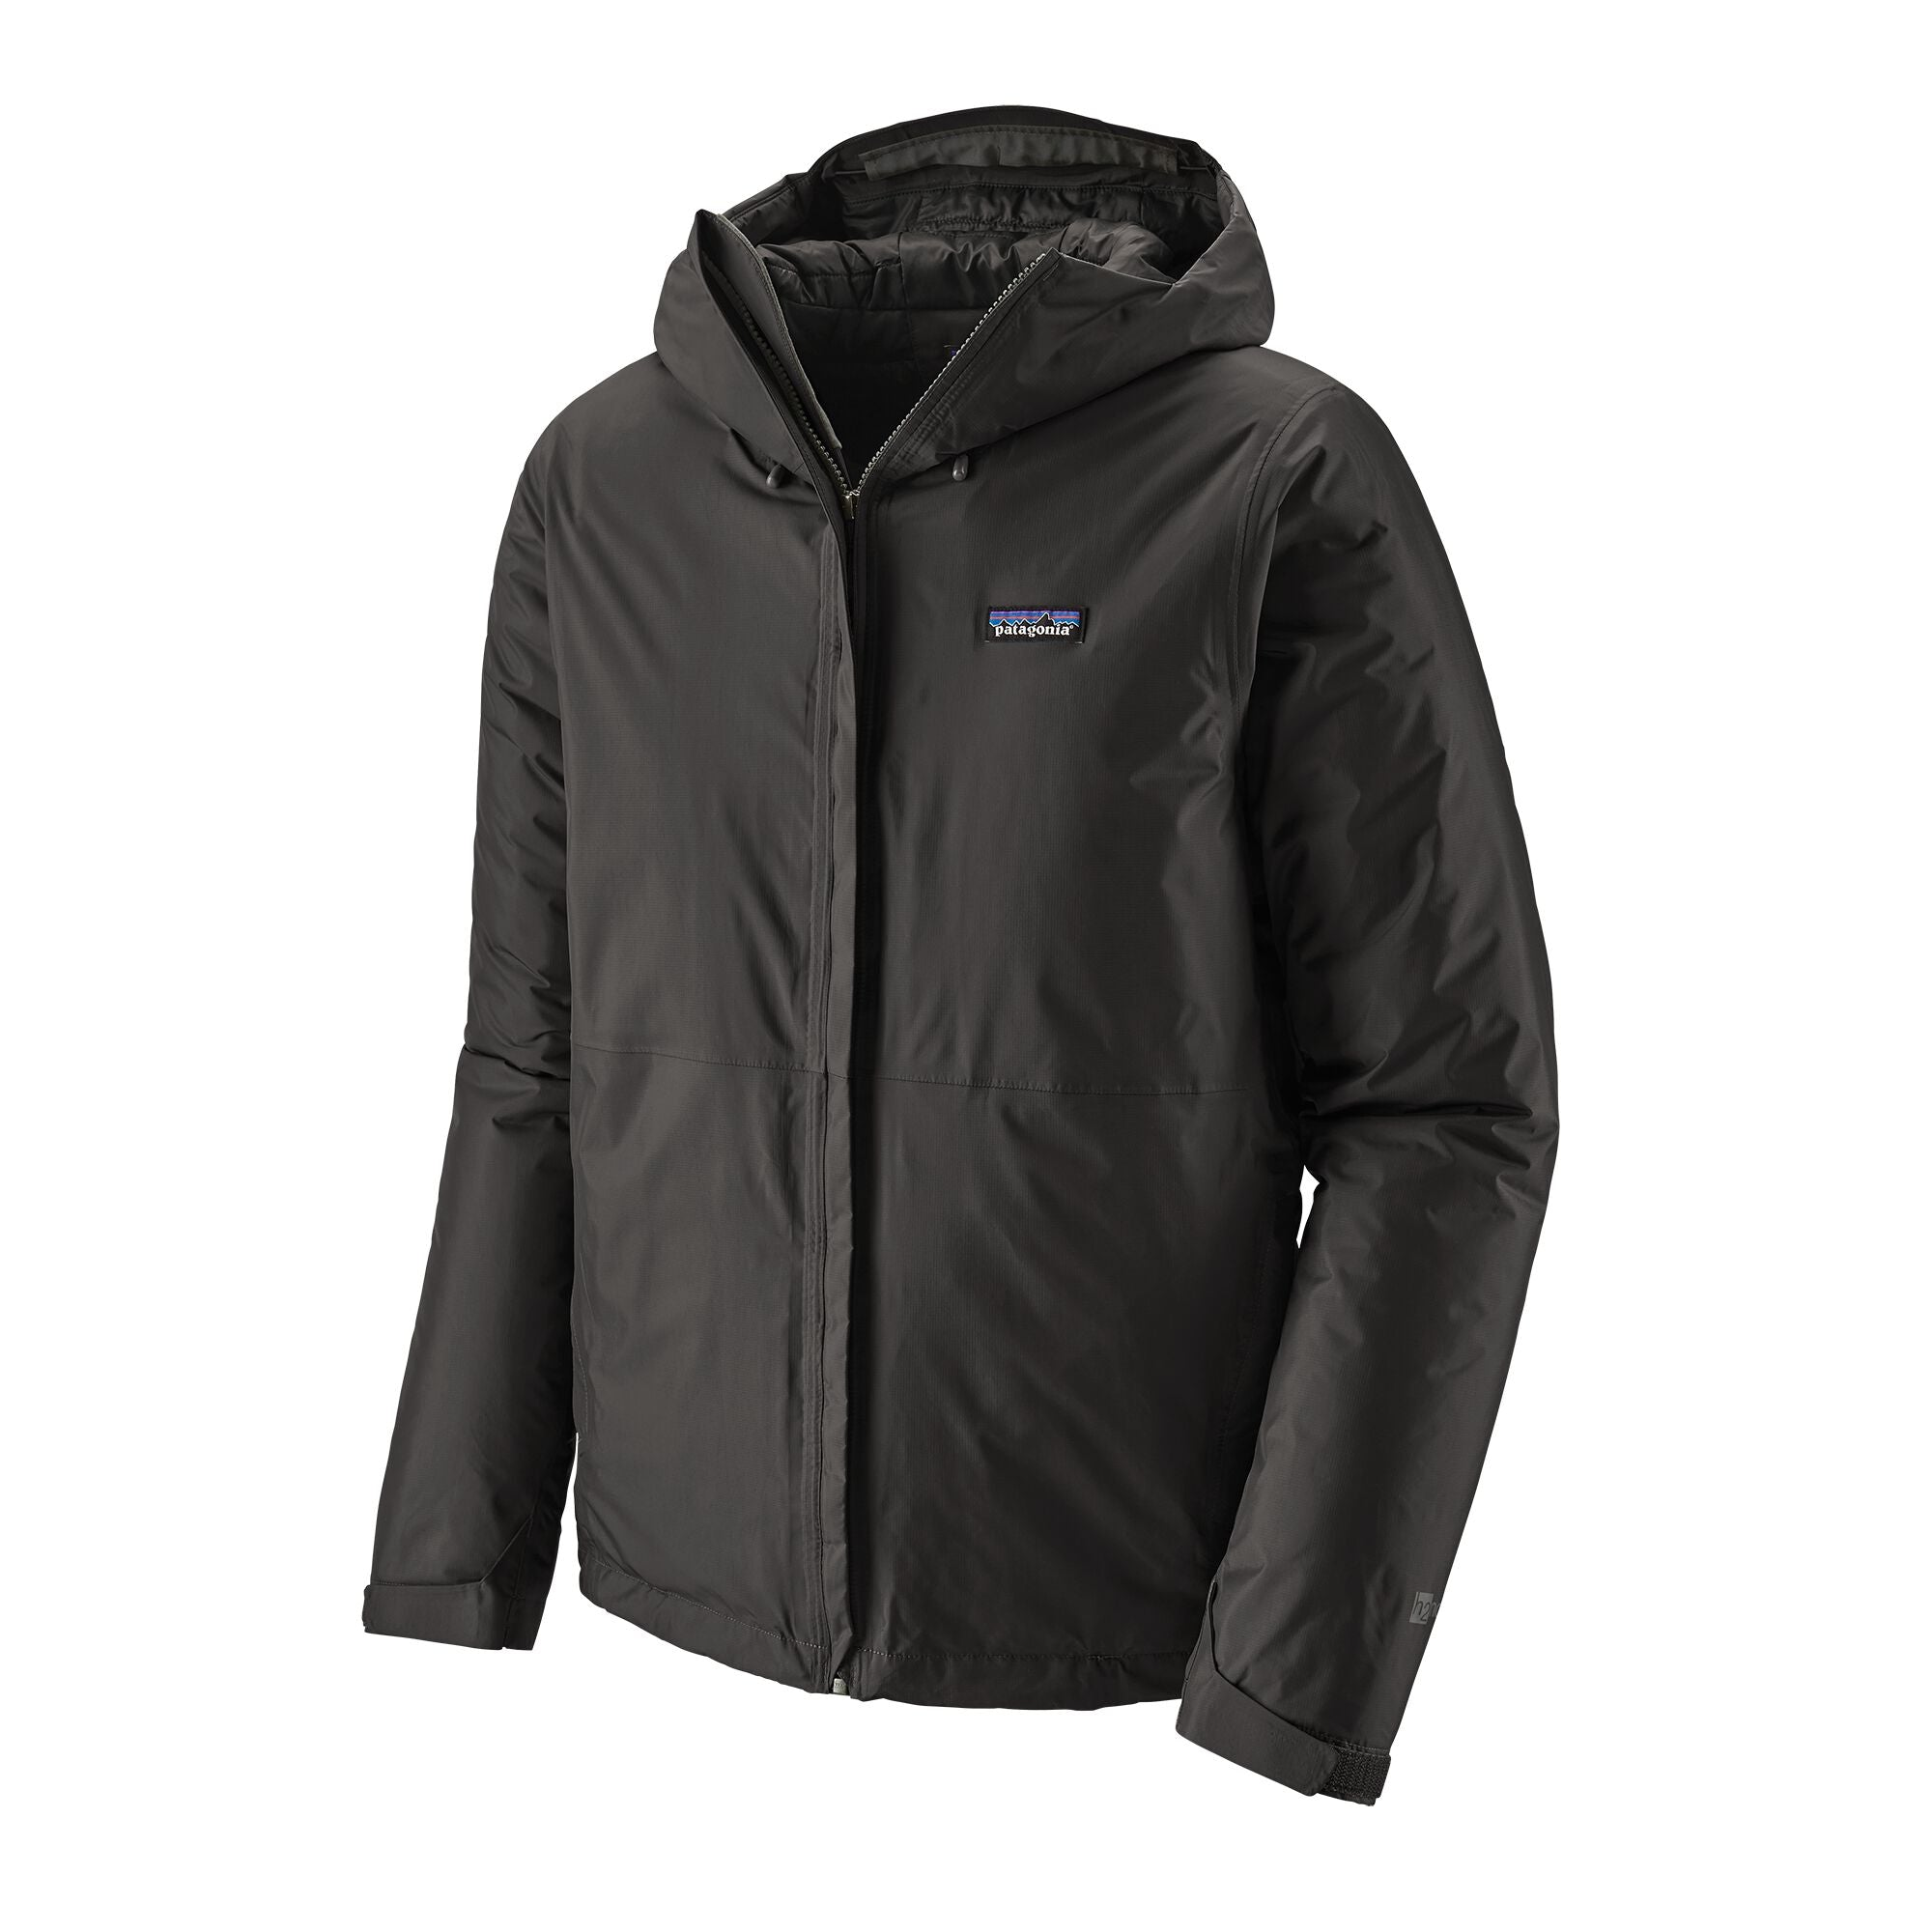 Chaqueta Impermeable Hombre Insulated Torrentshell Jacket Negro Patagonia